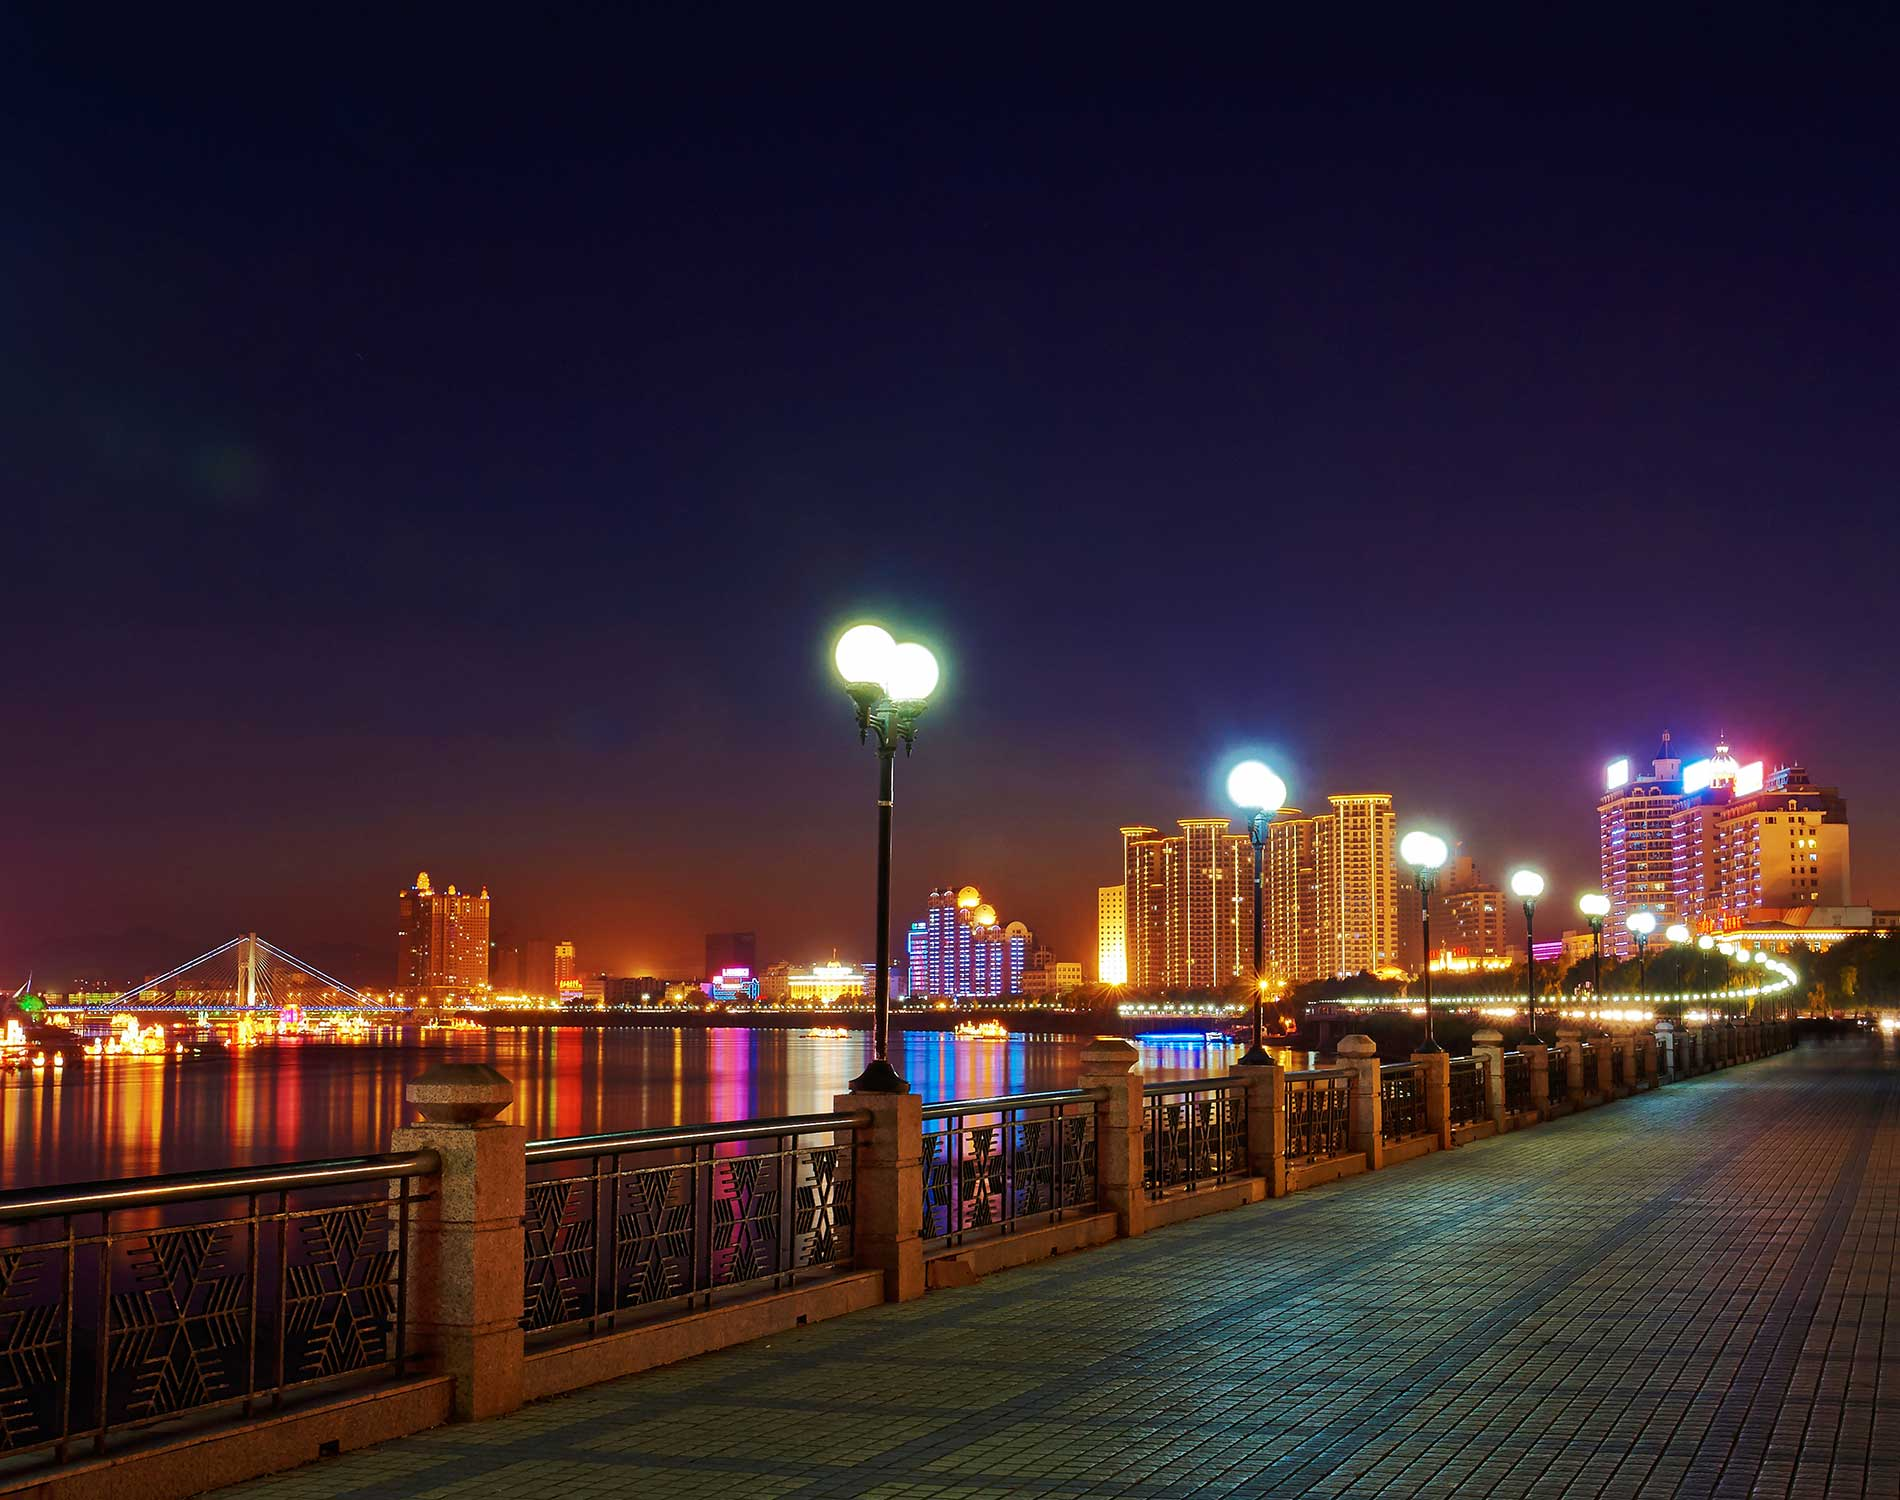 Jilin City China  city photos gallery : Legal notices Accessibility Use of cookies Privacy policy Recruitment ...